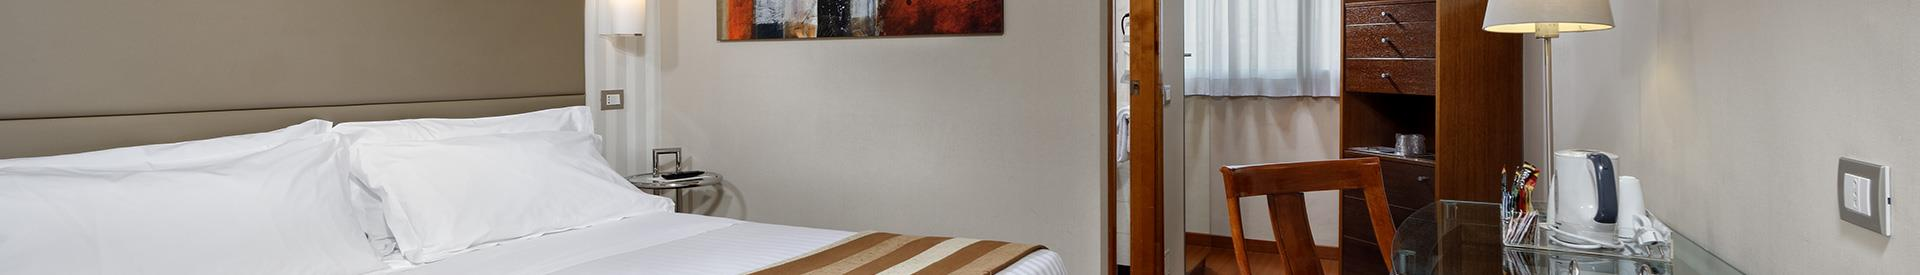 Rooms in Rome - Best Western Hotel Piccadilly - Rooms Central Rome